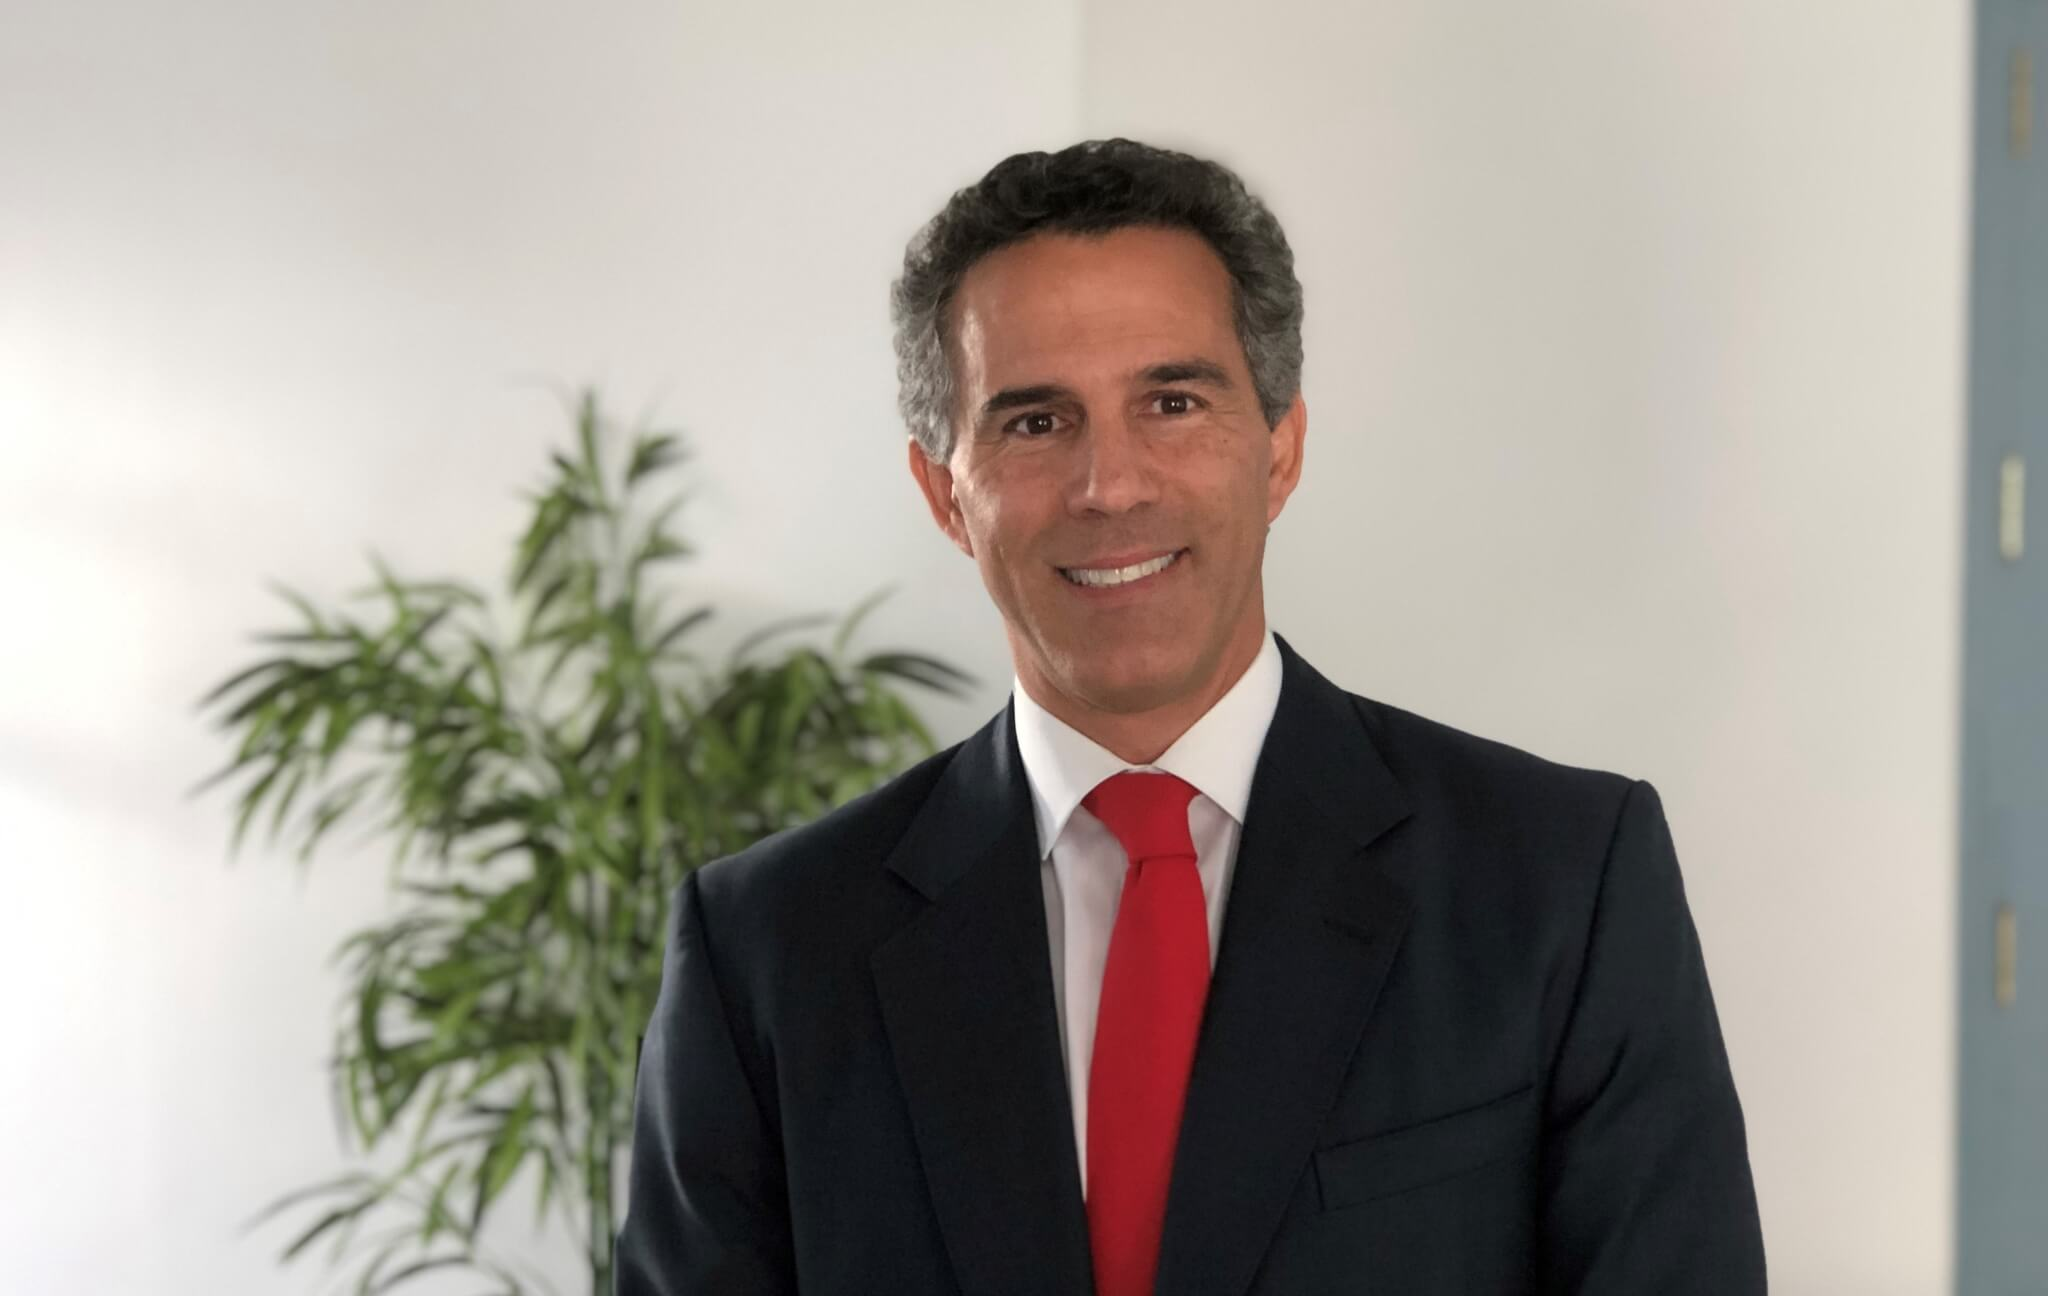 Pablo Pérez-Bedmar, Business Development Executive Vice President